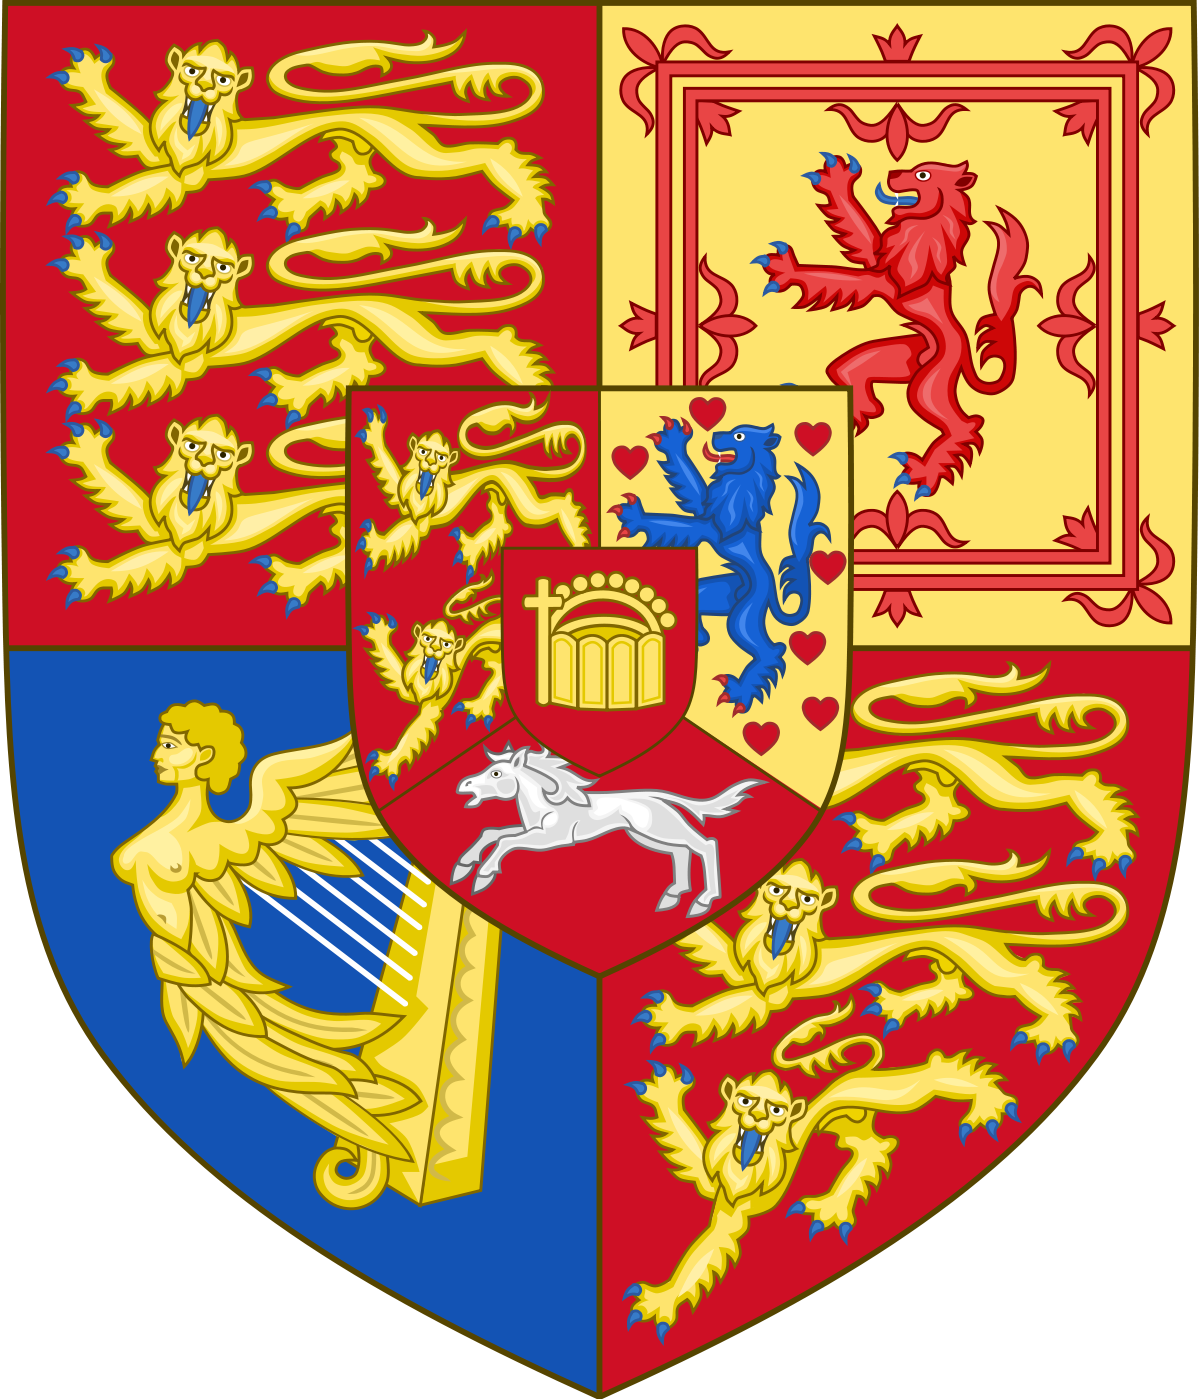 Throne clipart king cape. House of hanover wikipedia